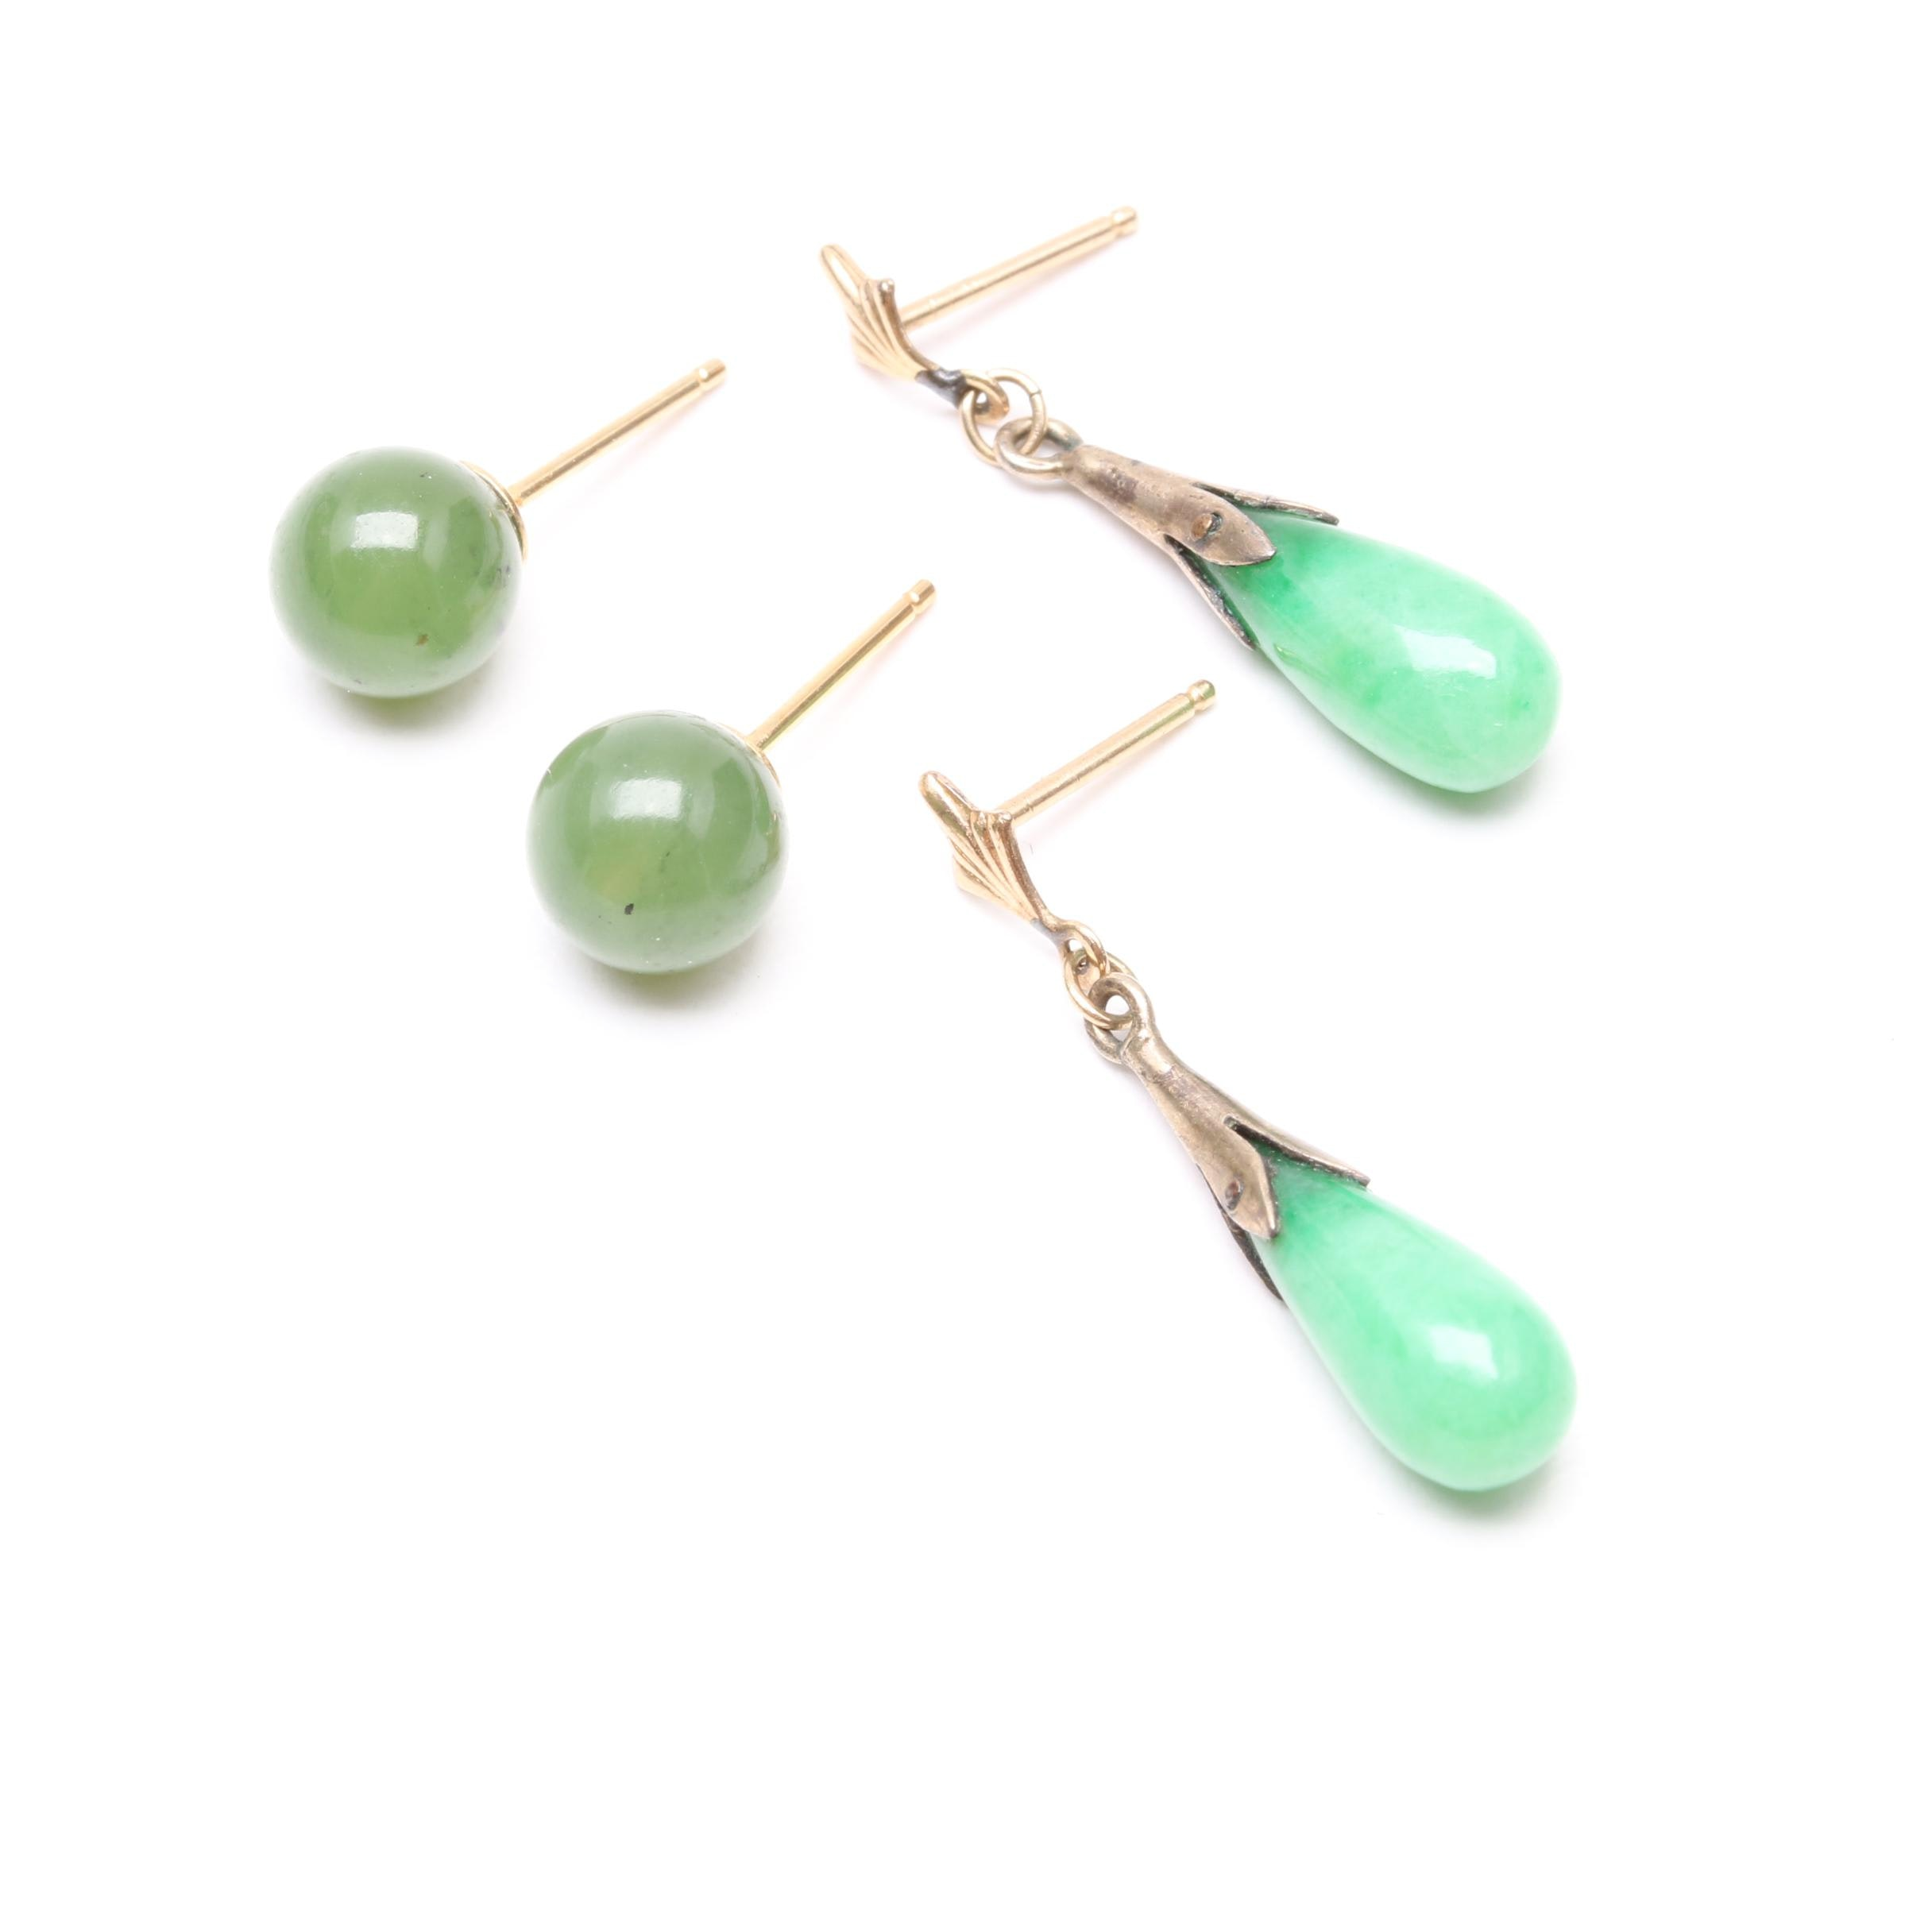 14K Yellow Gold Dyed Jadeite and Nephrite Earrings Including 800 Silver and 18K